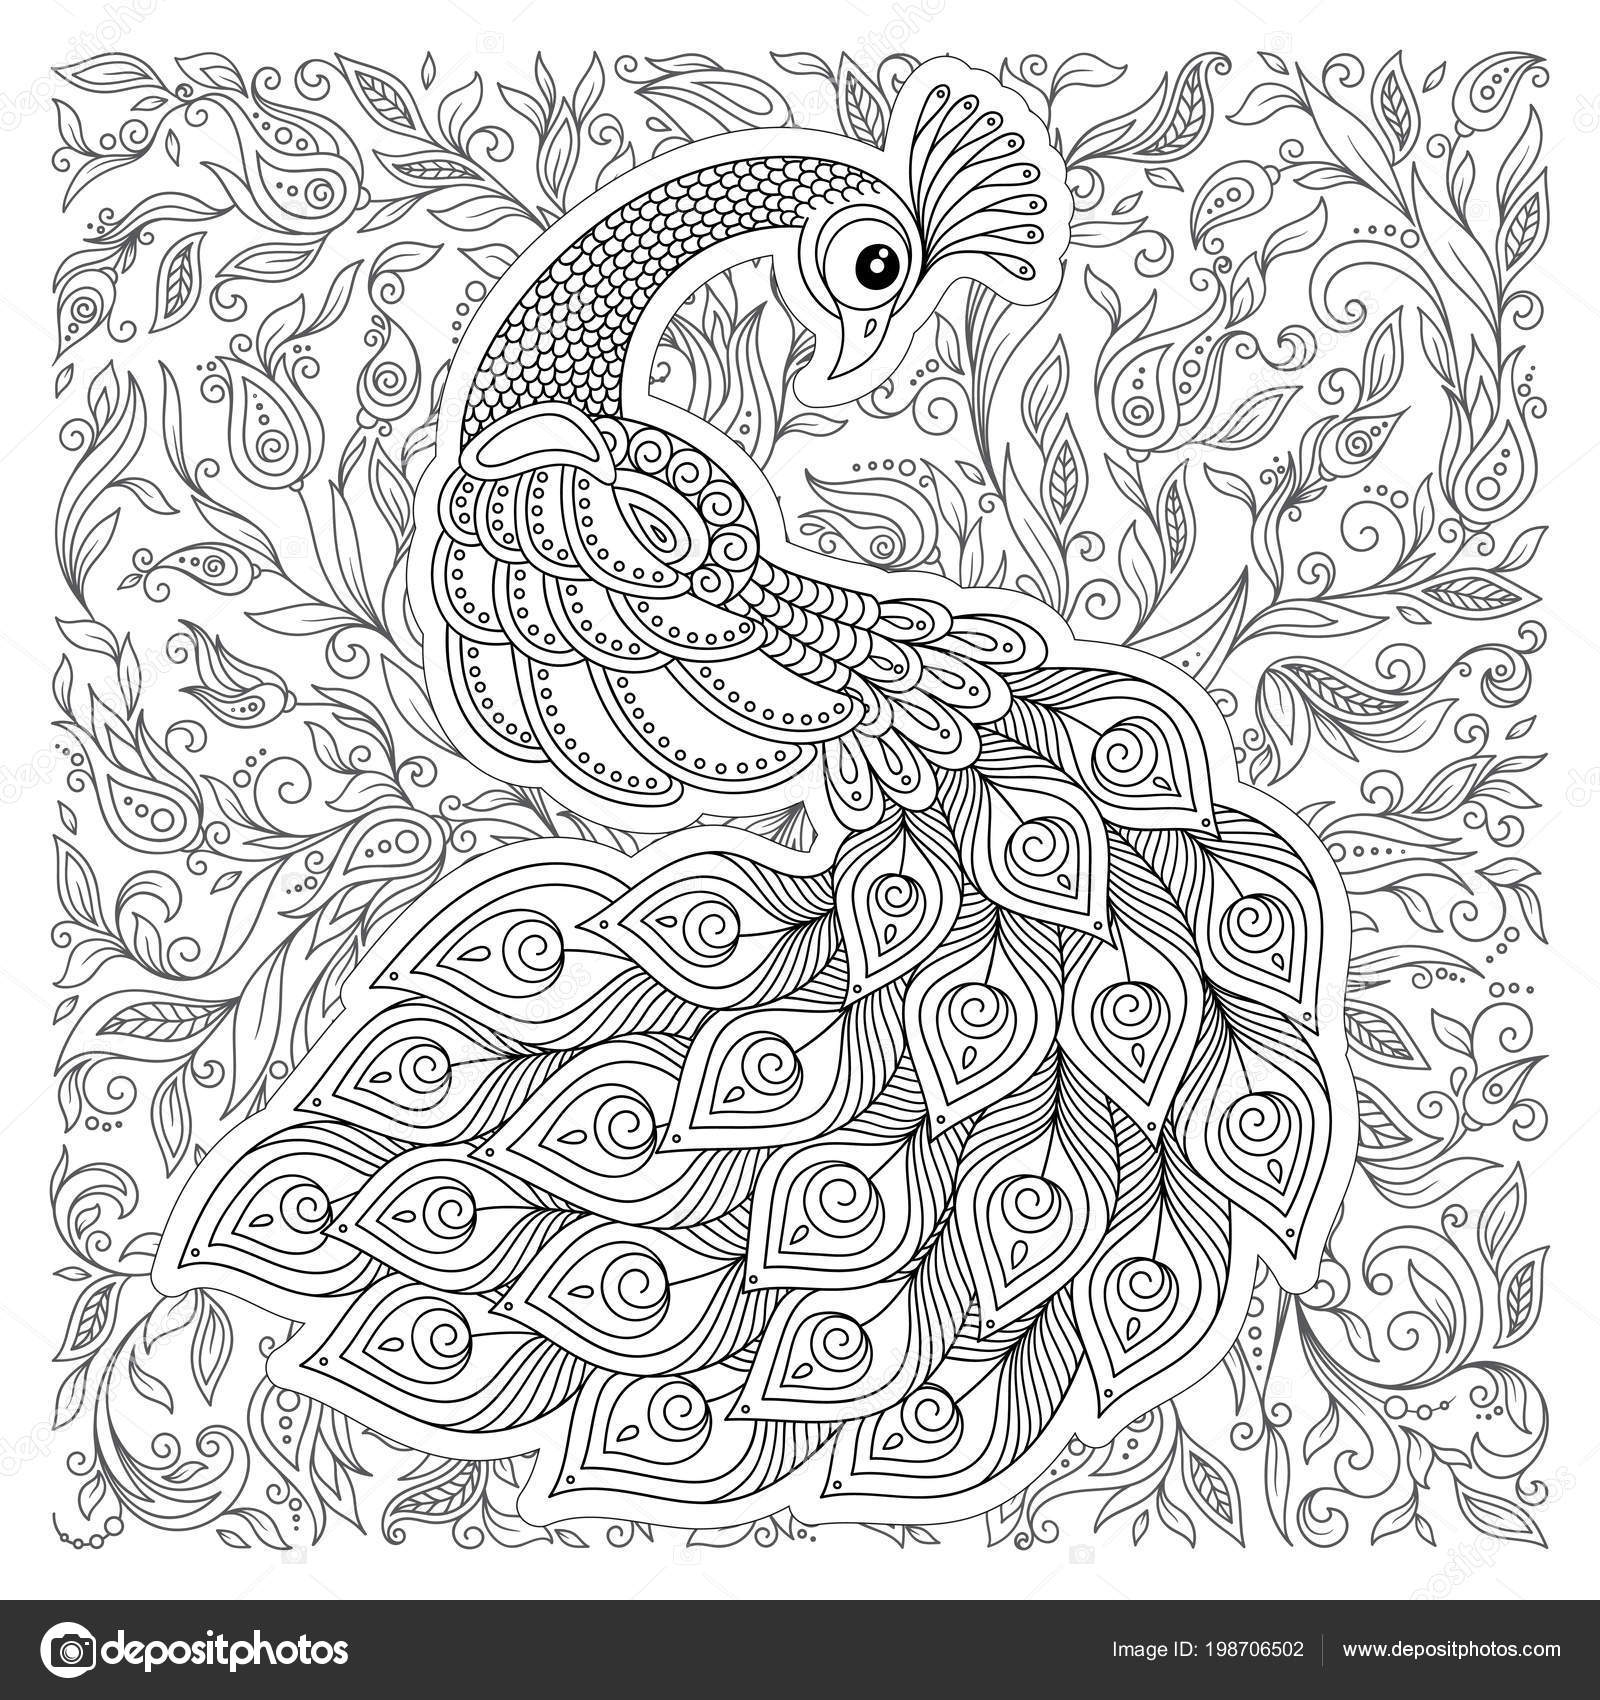 Coloriage Adulte Stress.Paon Zentangle Style Coloriage Adulte Stress Noir Blanc Main